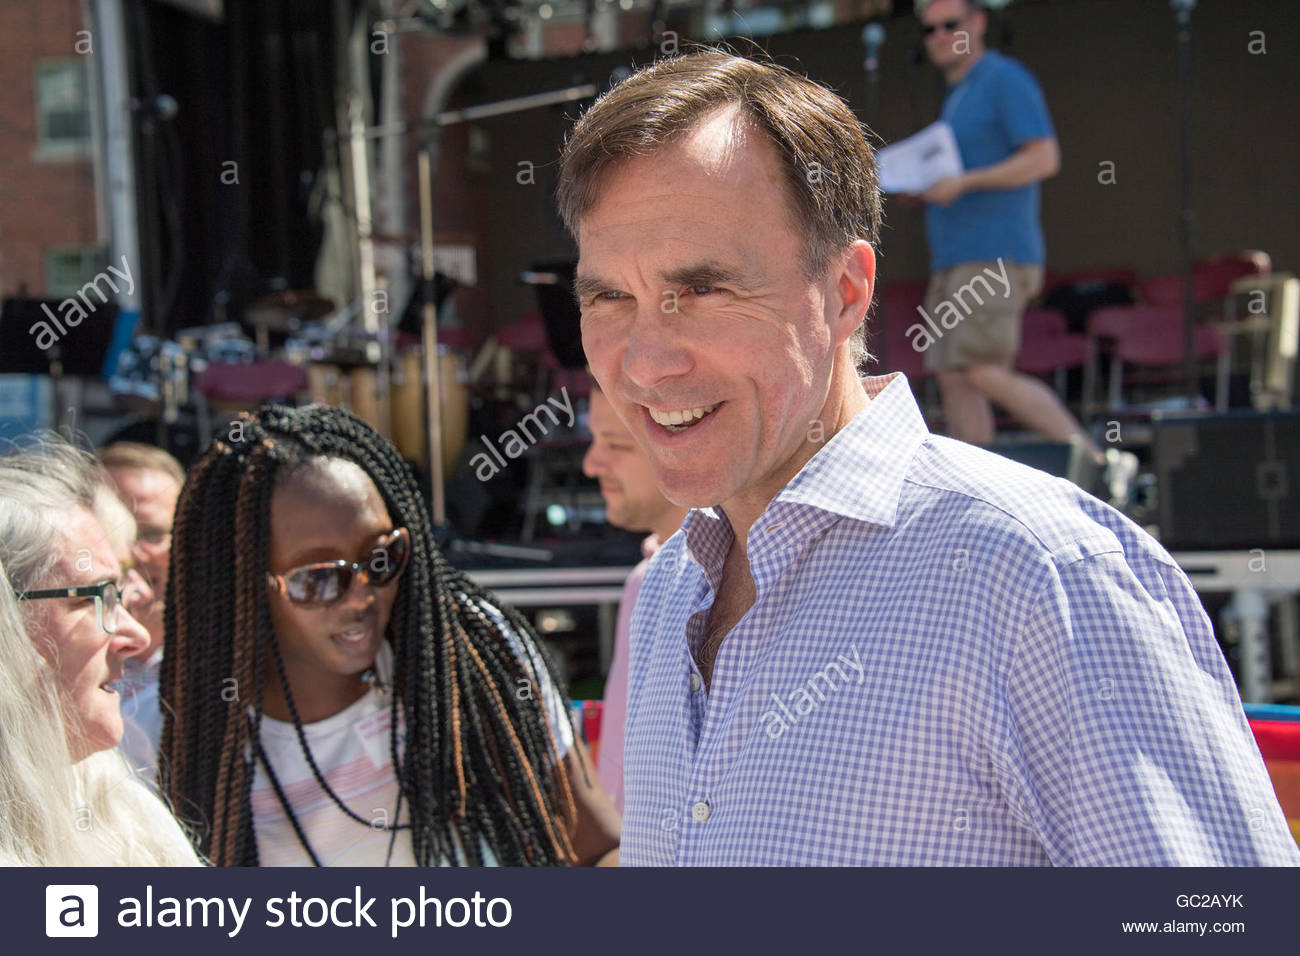 Bill Morneau, Minister of Finance, attending Church on Church which is the annual event of the Metropolitan Community - Stock Image